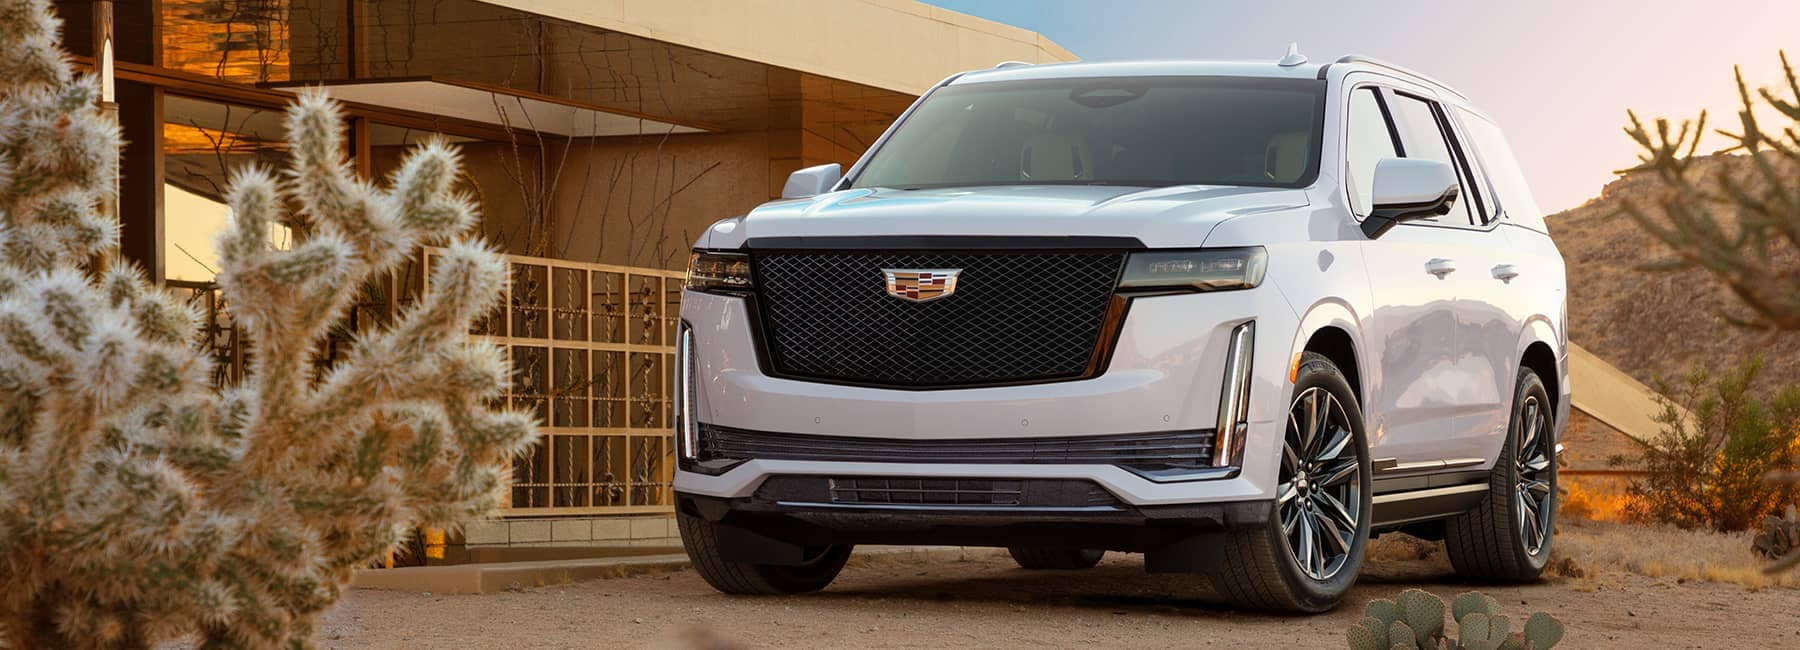 White 2021 Cadillac Escalade parked outside of a house in the desert